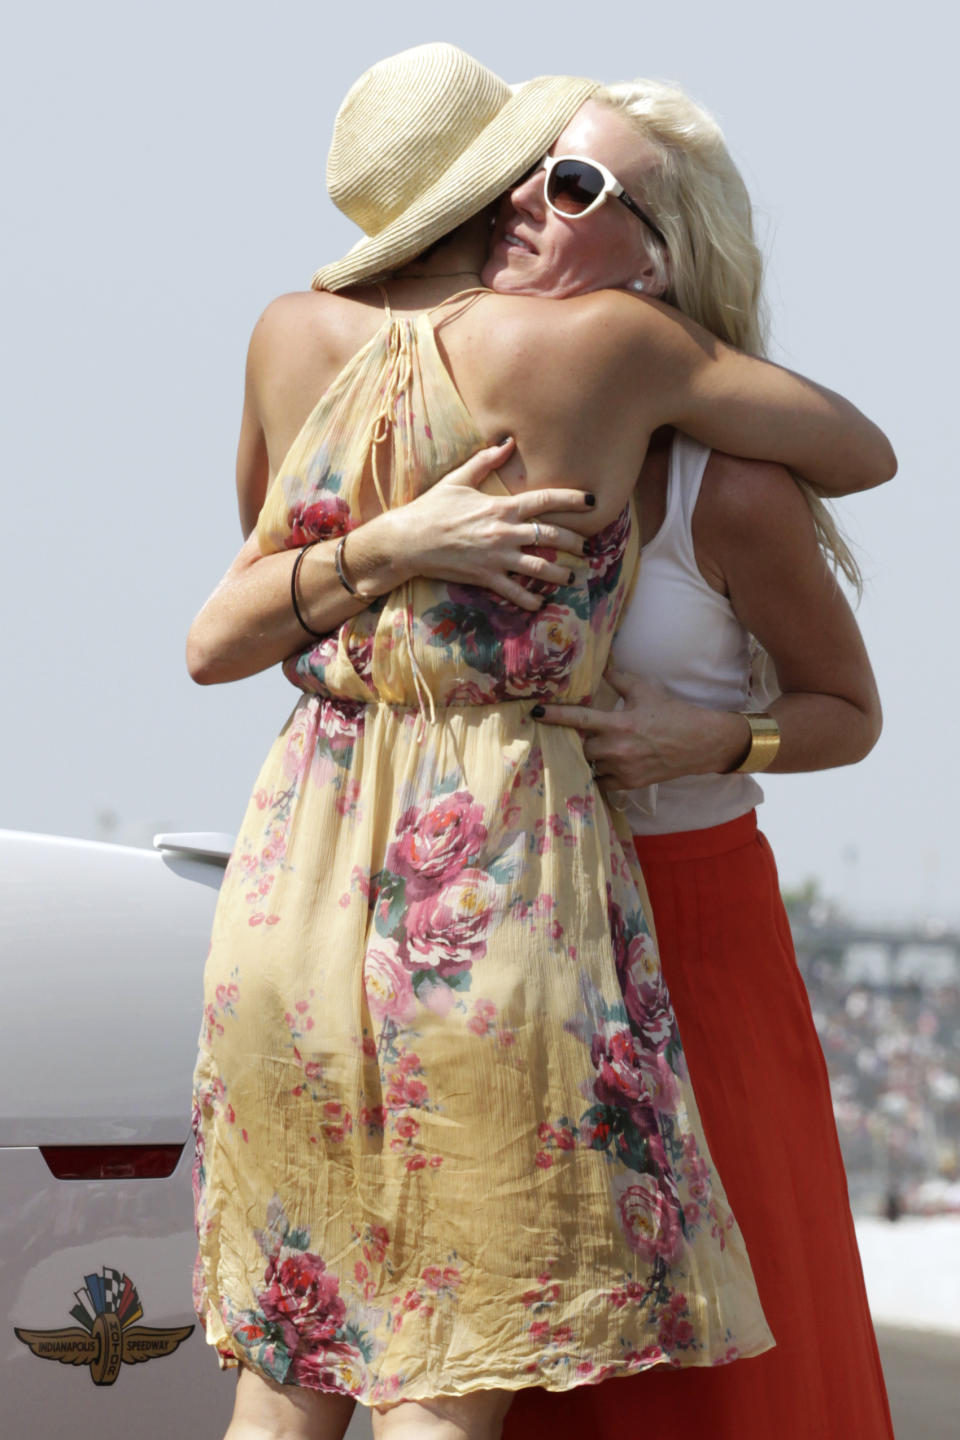 Actress Ashley Judd, left, hugs Susie Wheldon after Judd's husband, Dario Franchitti, of Scotland, won IndyCar's Indianapolis 500 auto race at Indianapolis Motor Speedway in Indianapolis, Sunday, May 27, 2012. (AP Photo/AJ Mast)